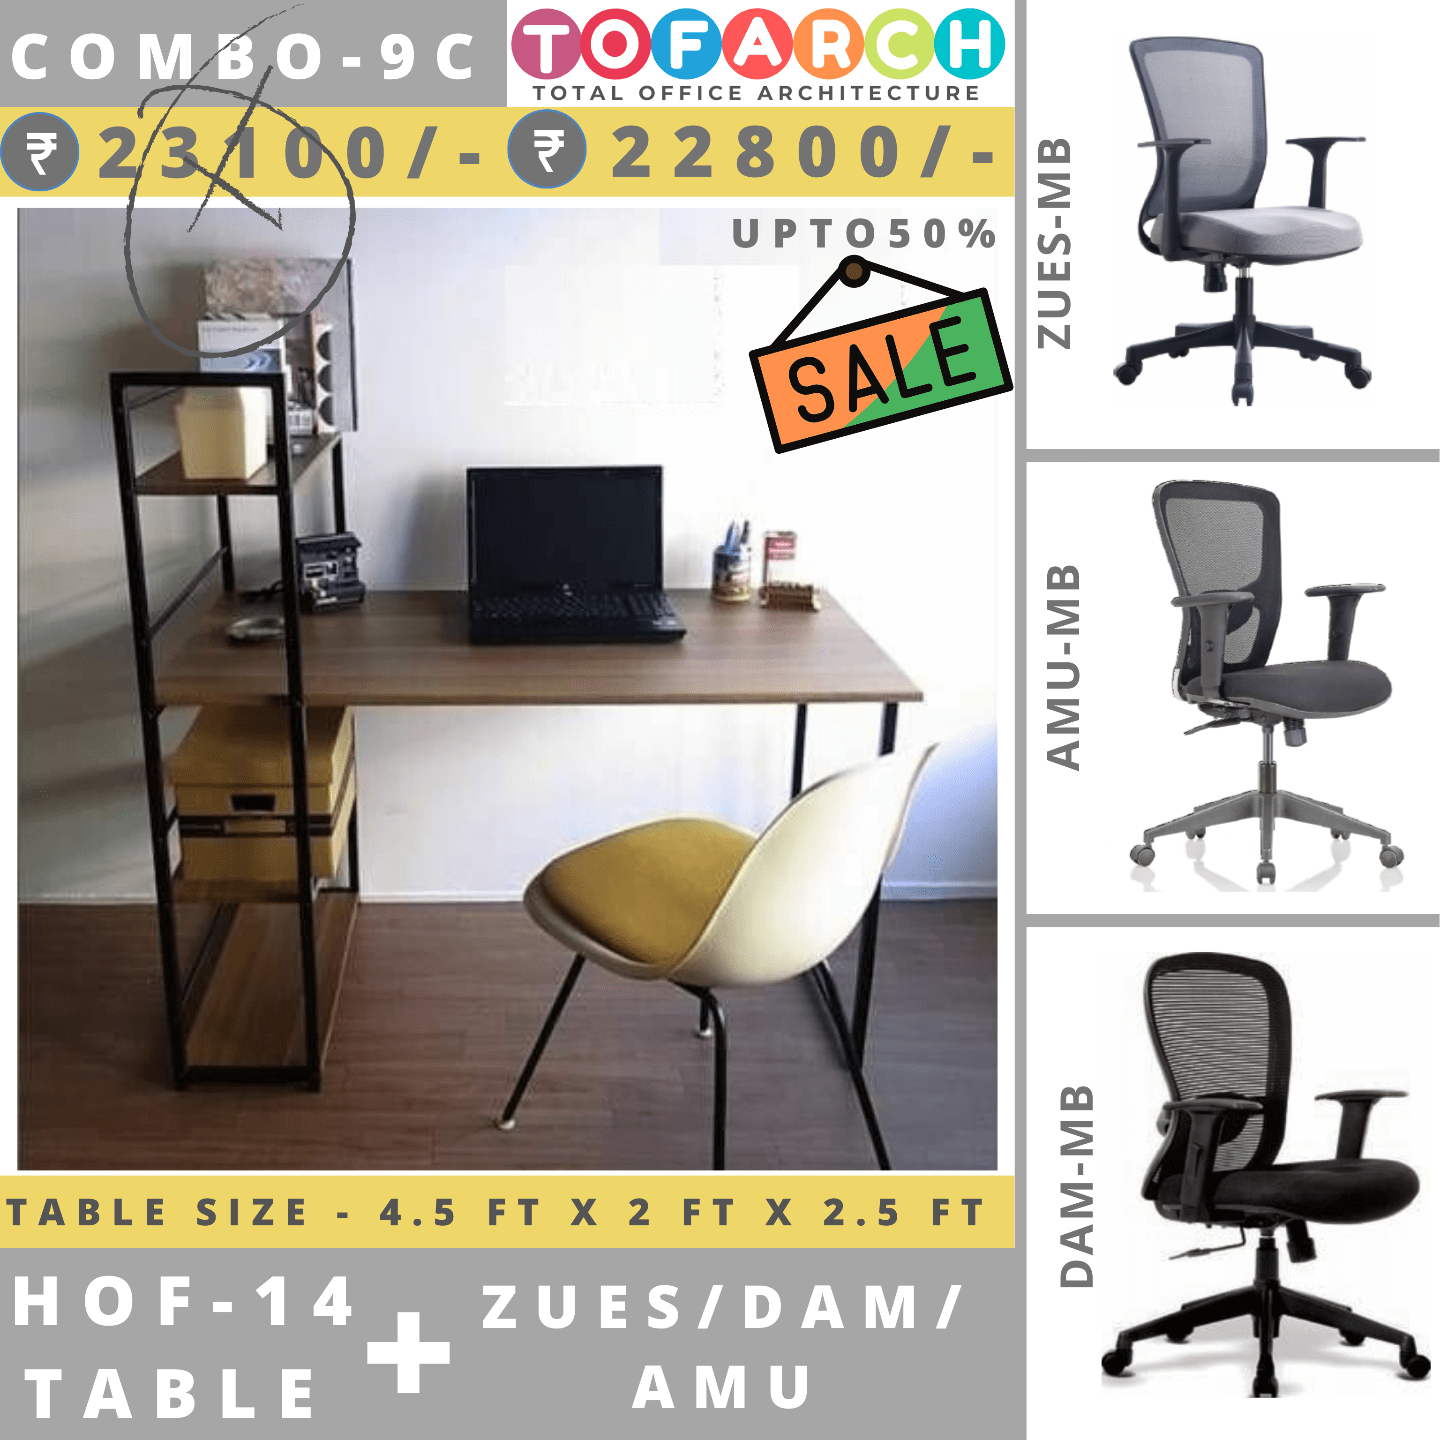 Table Chair Combo – 9C (HOF 14 Table + DAM / AMU / ZUES Chair)